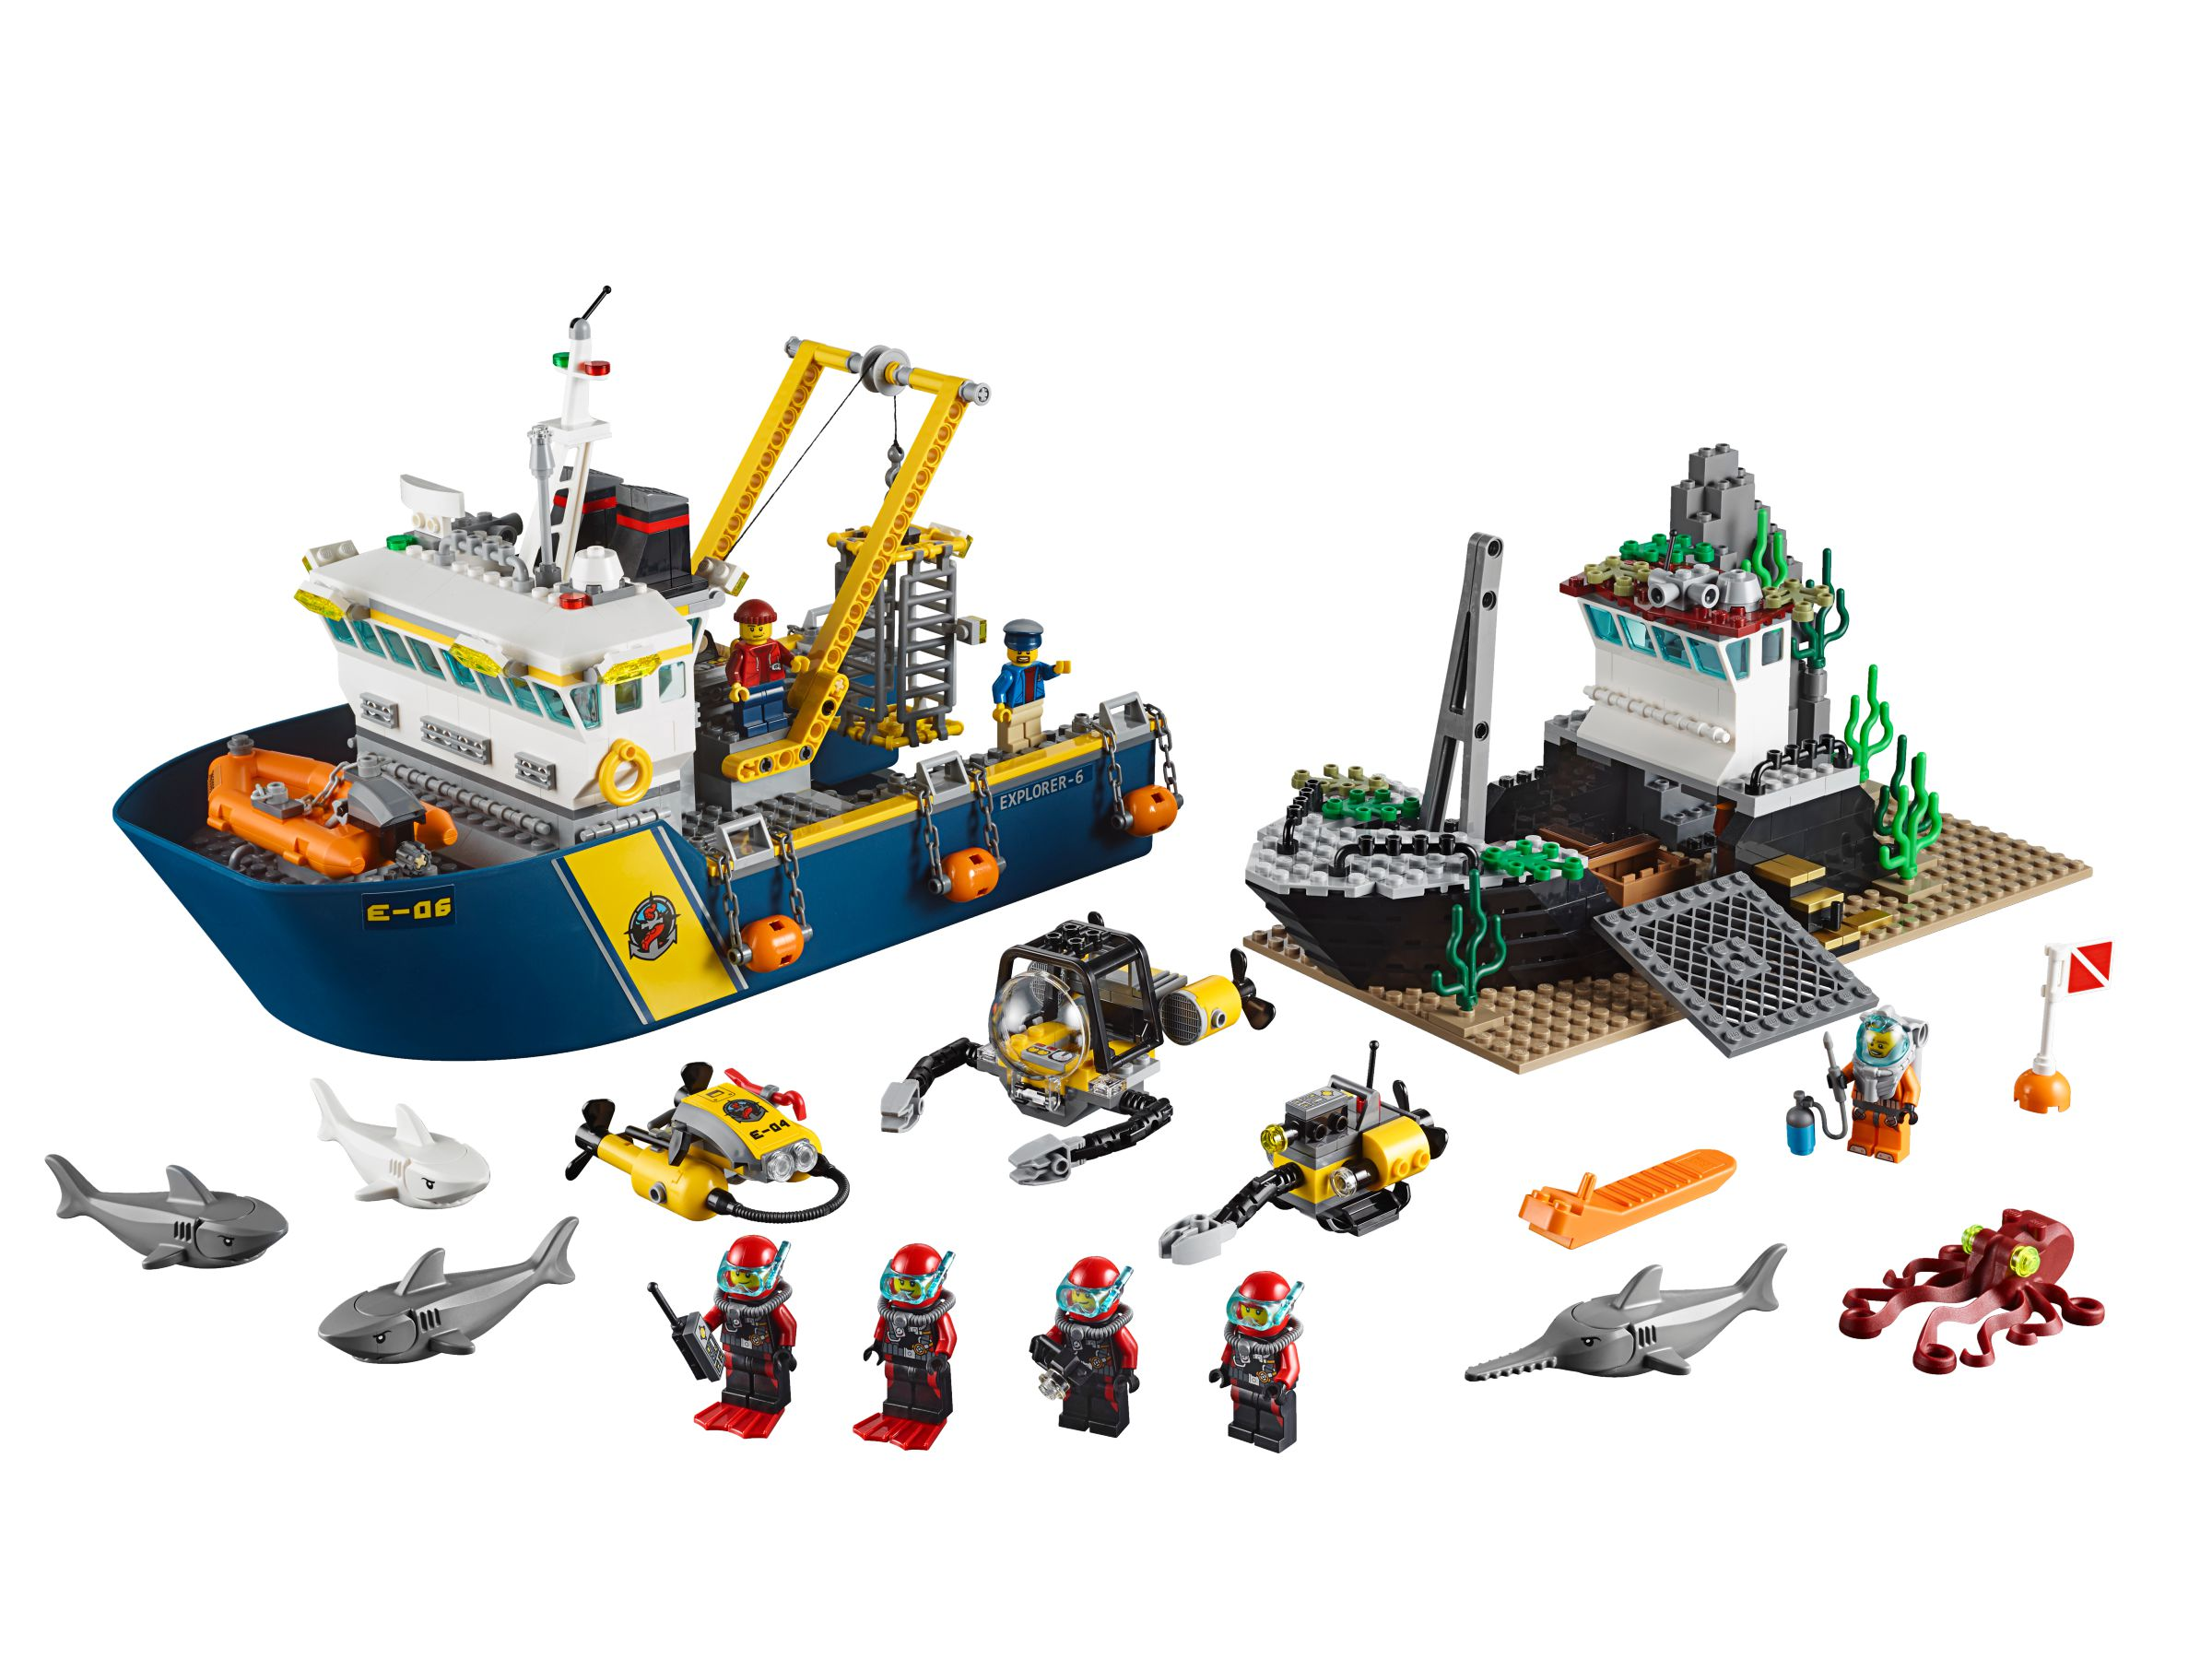 LEGO City 60095 Tiefsee-Expeditionsschiff LEGO_60095.jpg